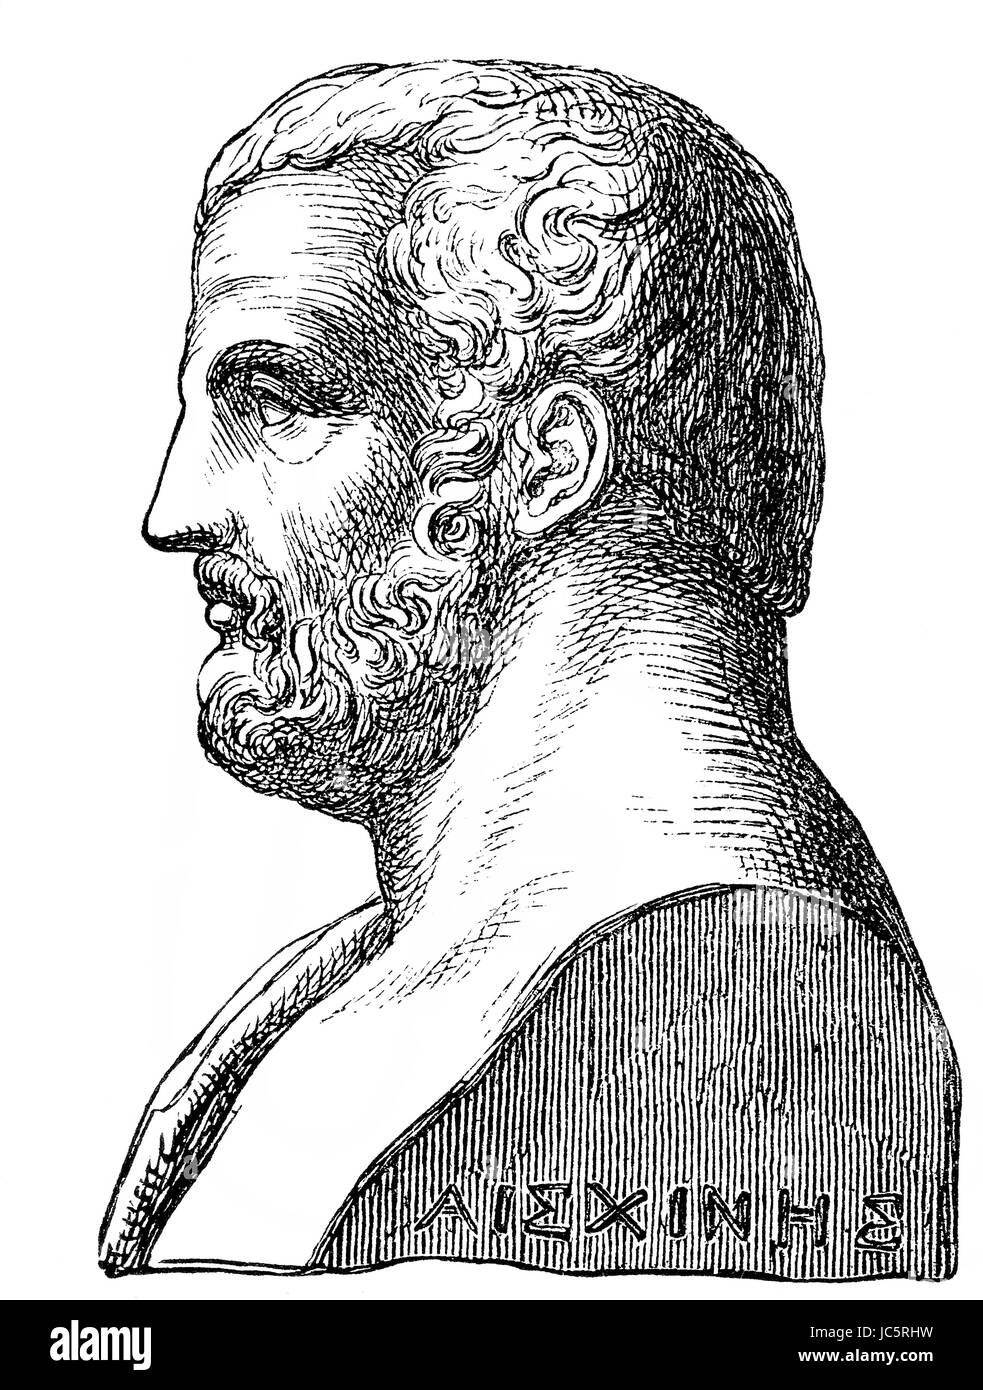 Aeschines, 389-314 BC, a Greek statesman and orator of ancient Athens - Stock Image